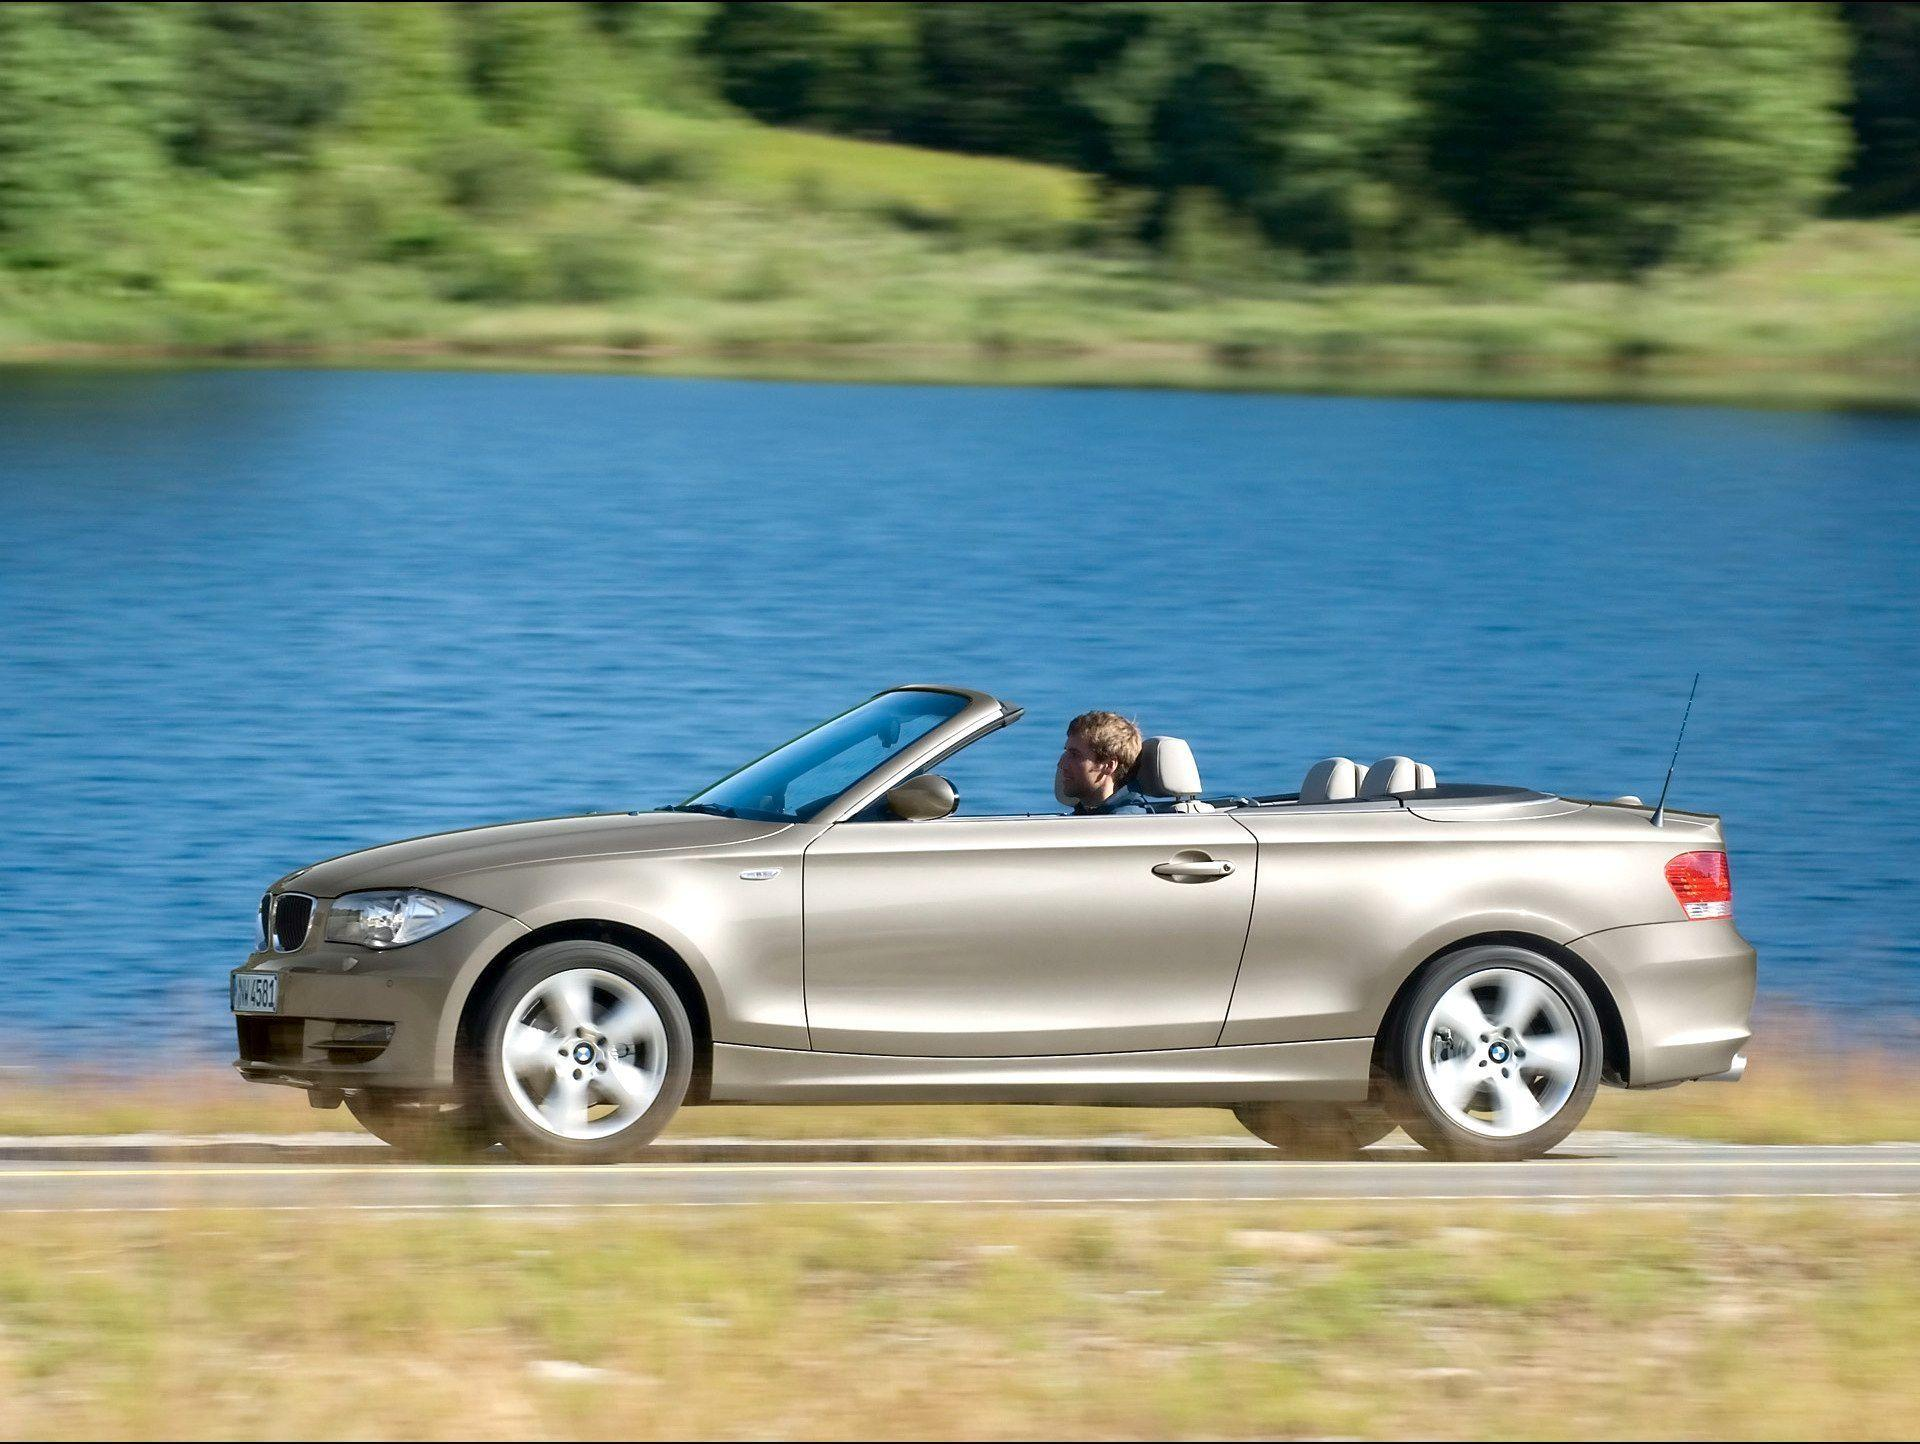 2008 BMW 1 Series Convertible Wallpaper 01 - 1920x1440